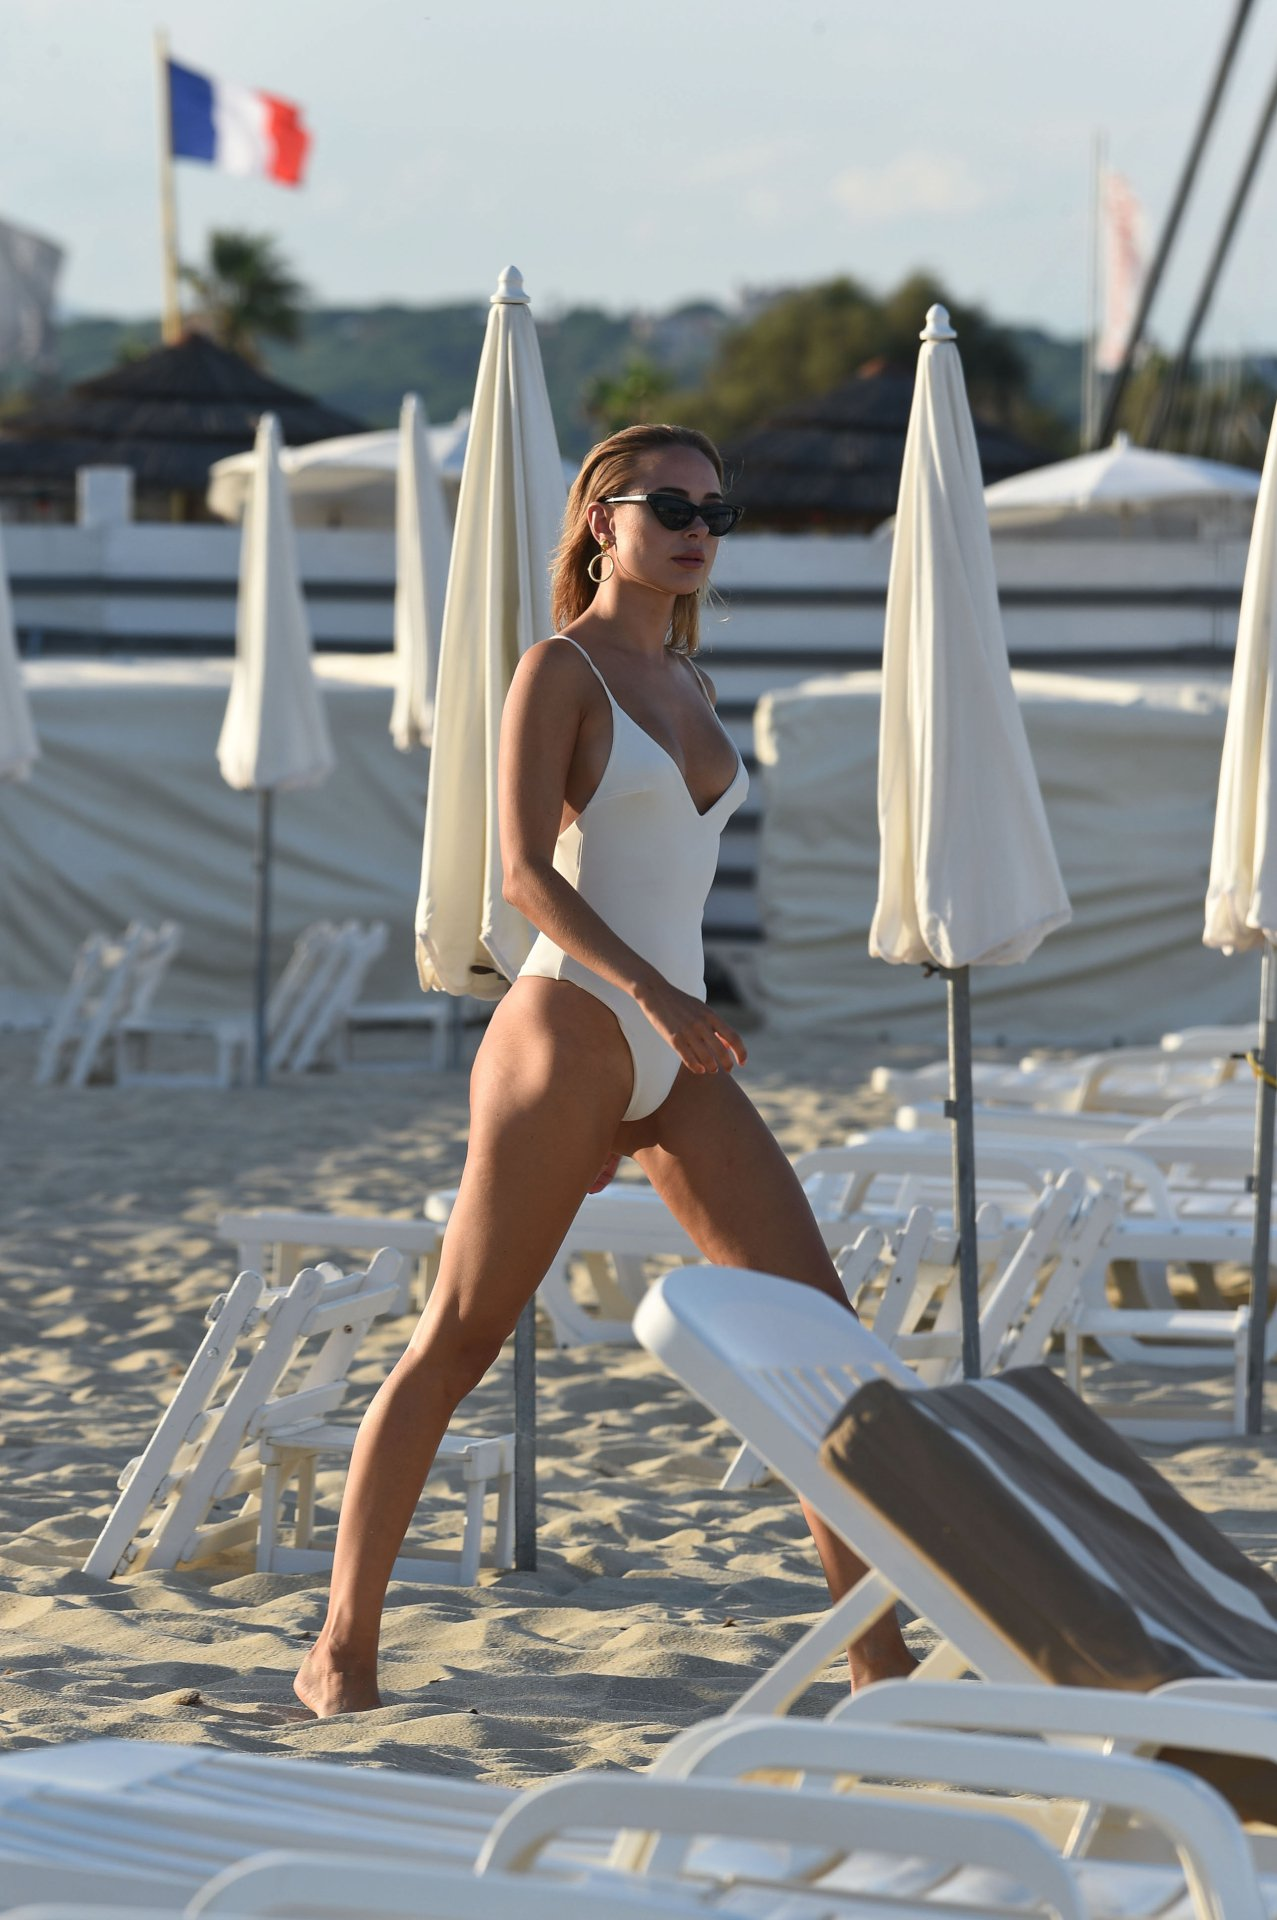 Victoria Beckham Topless Nude Sunbathing Photos recommend